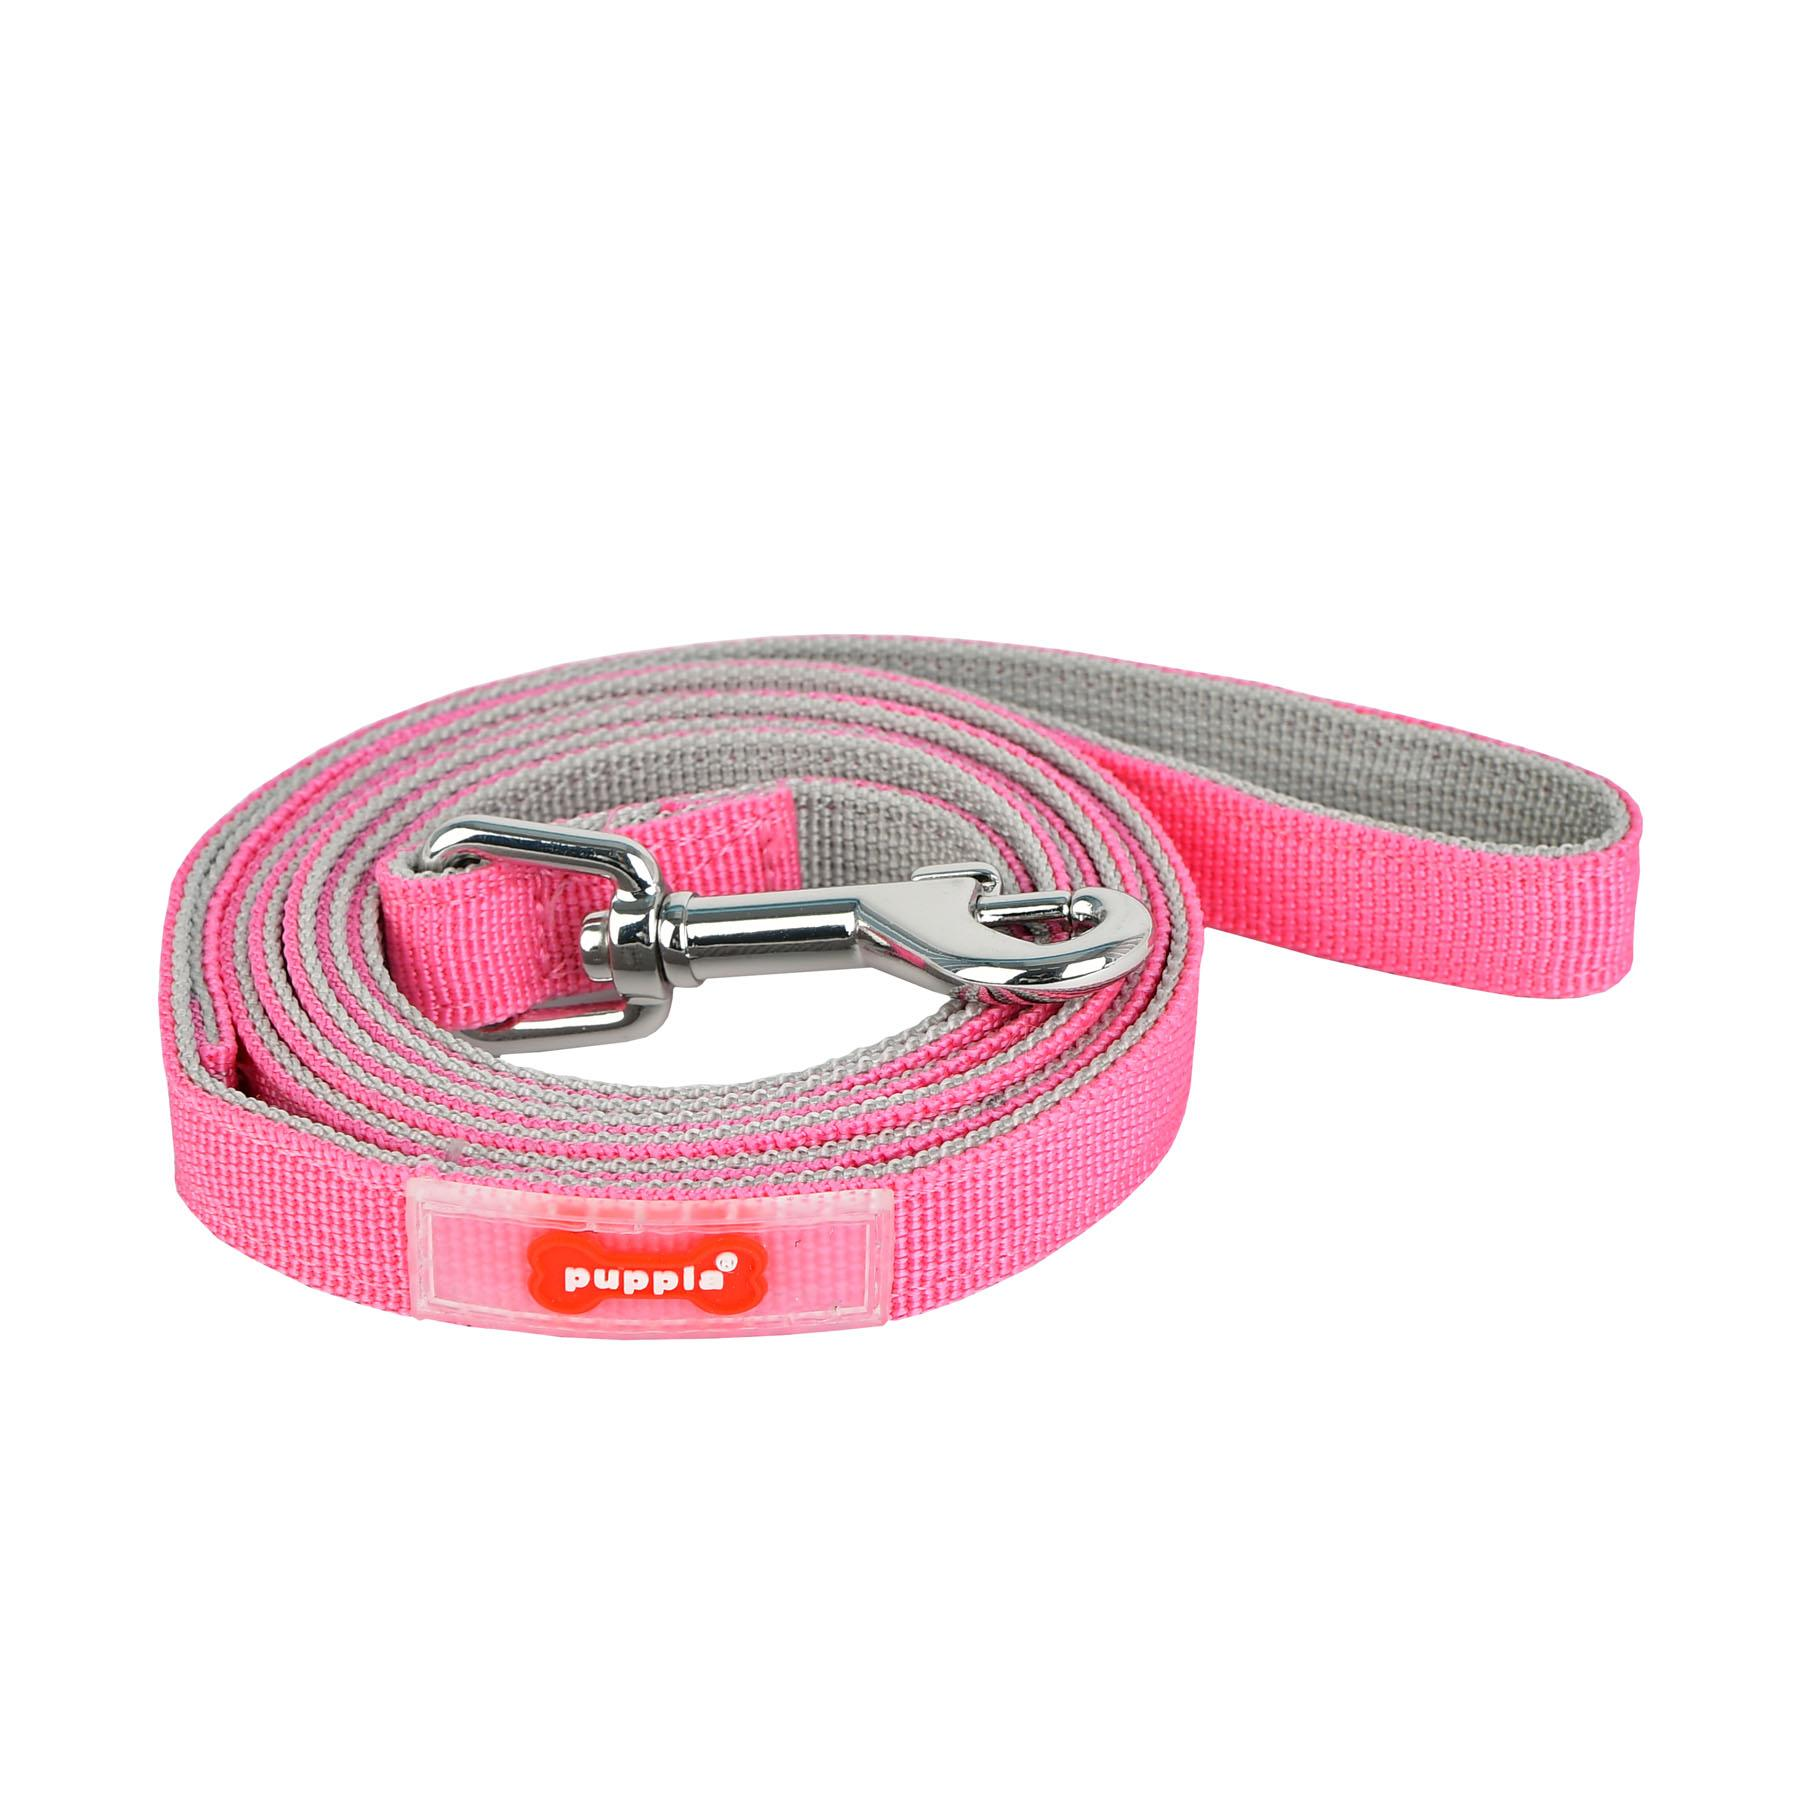 Sport Dog Leash by Puppia - Pink and Gray